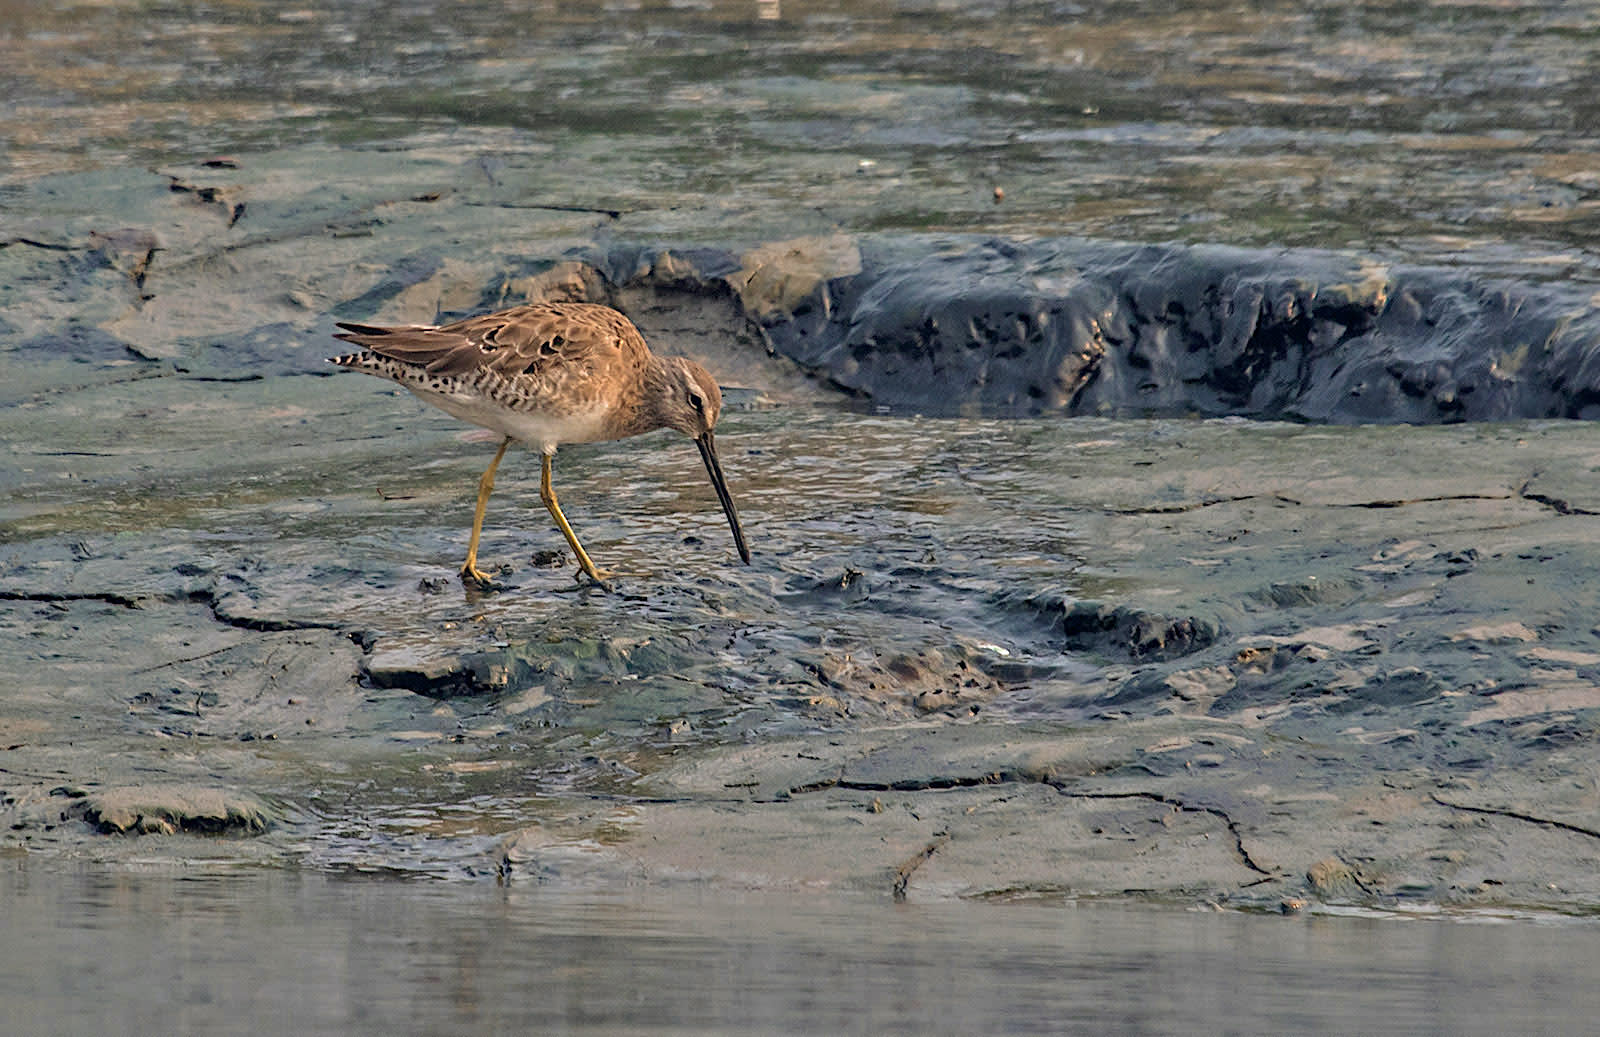 The wader uses its long bill like a sewing machine needle to probe for insects, molluscs, crustaceans, and marine worms in shallow waters or mud. Tactile receptors called Herbst corpuscles on the tip of its bill allow the bird to locate prey by touch. Photo: Shashank Dalvi